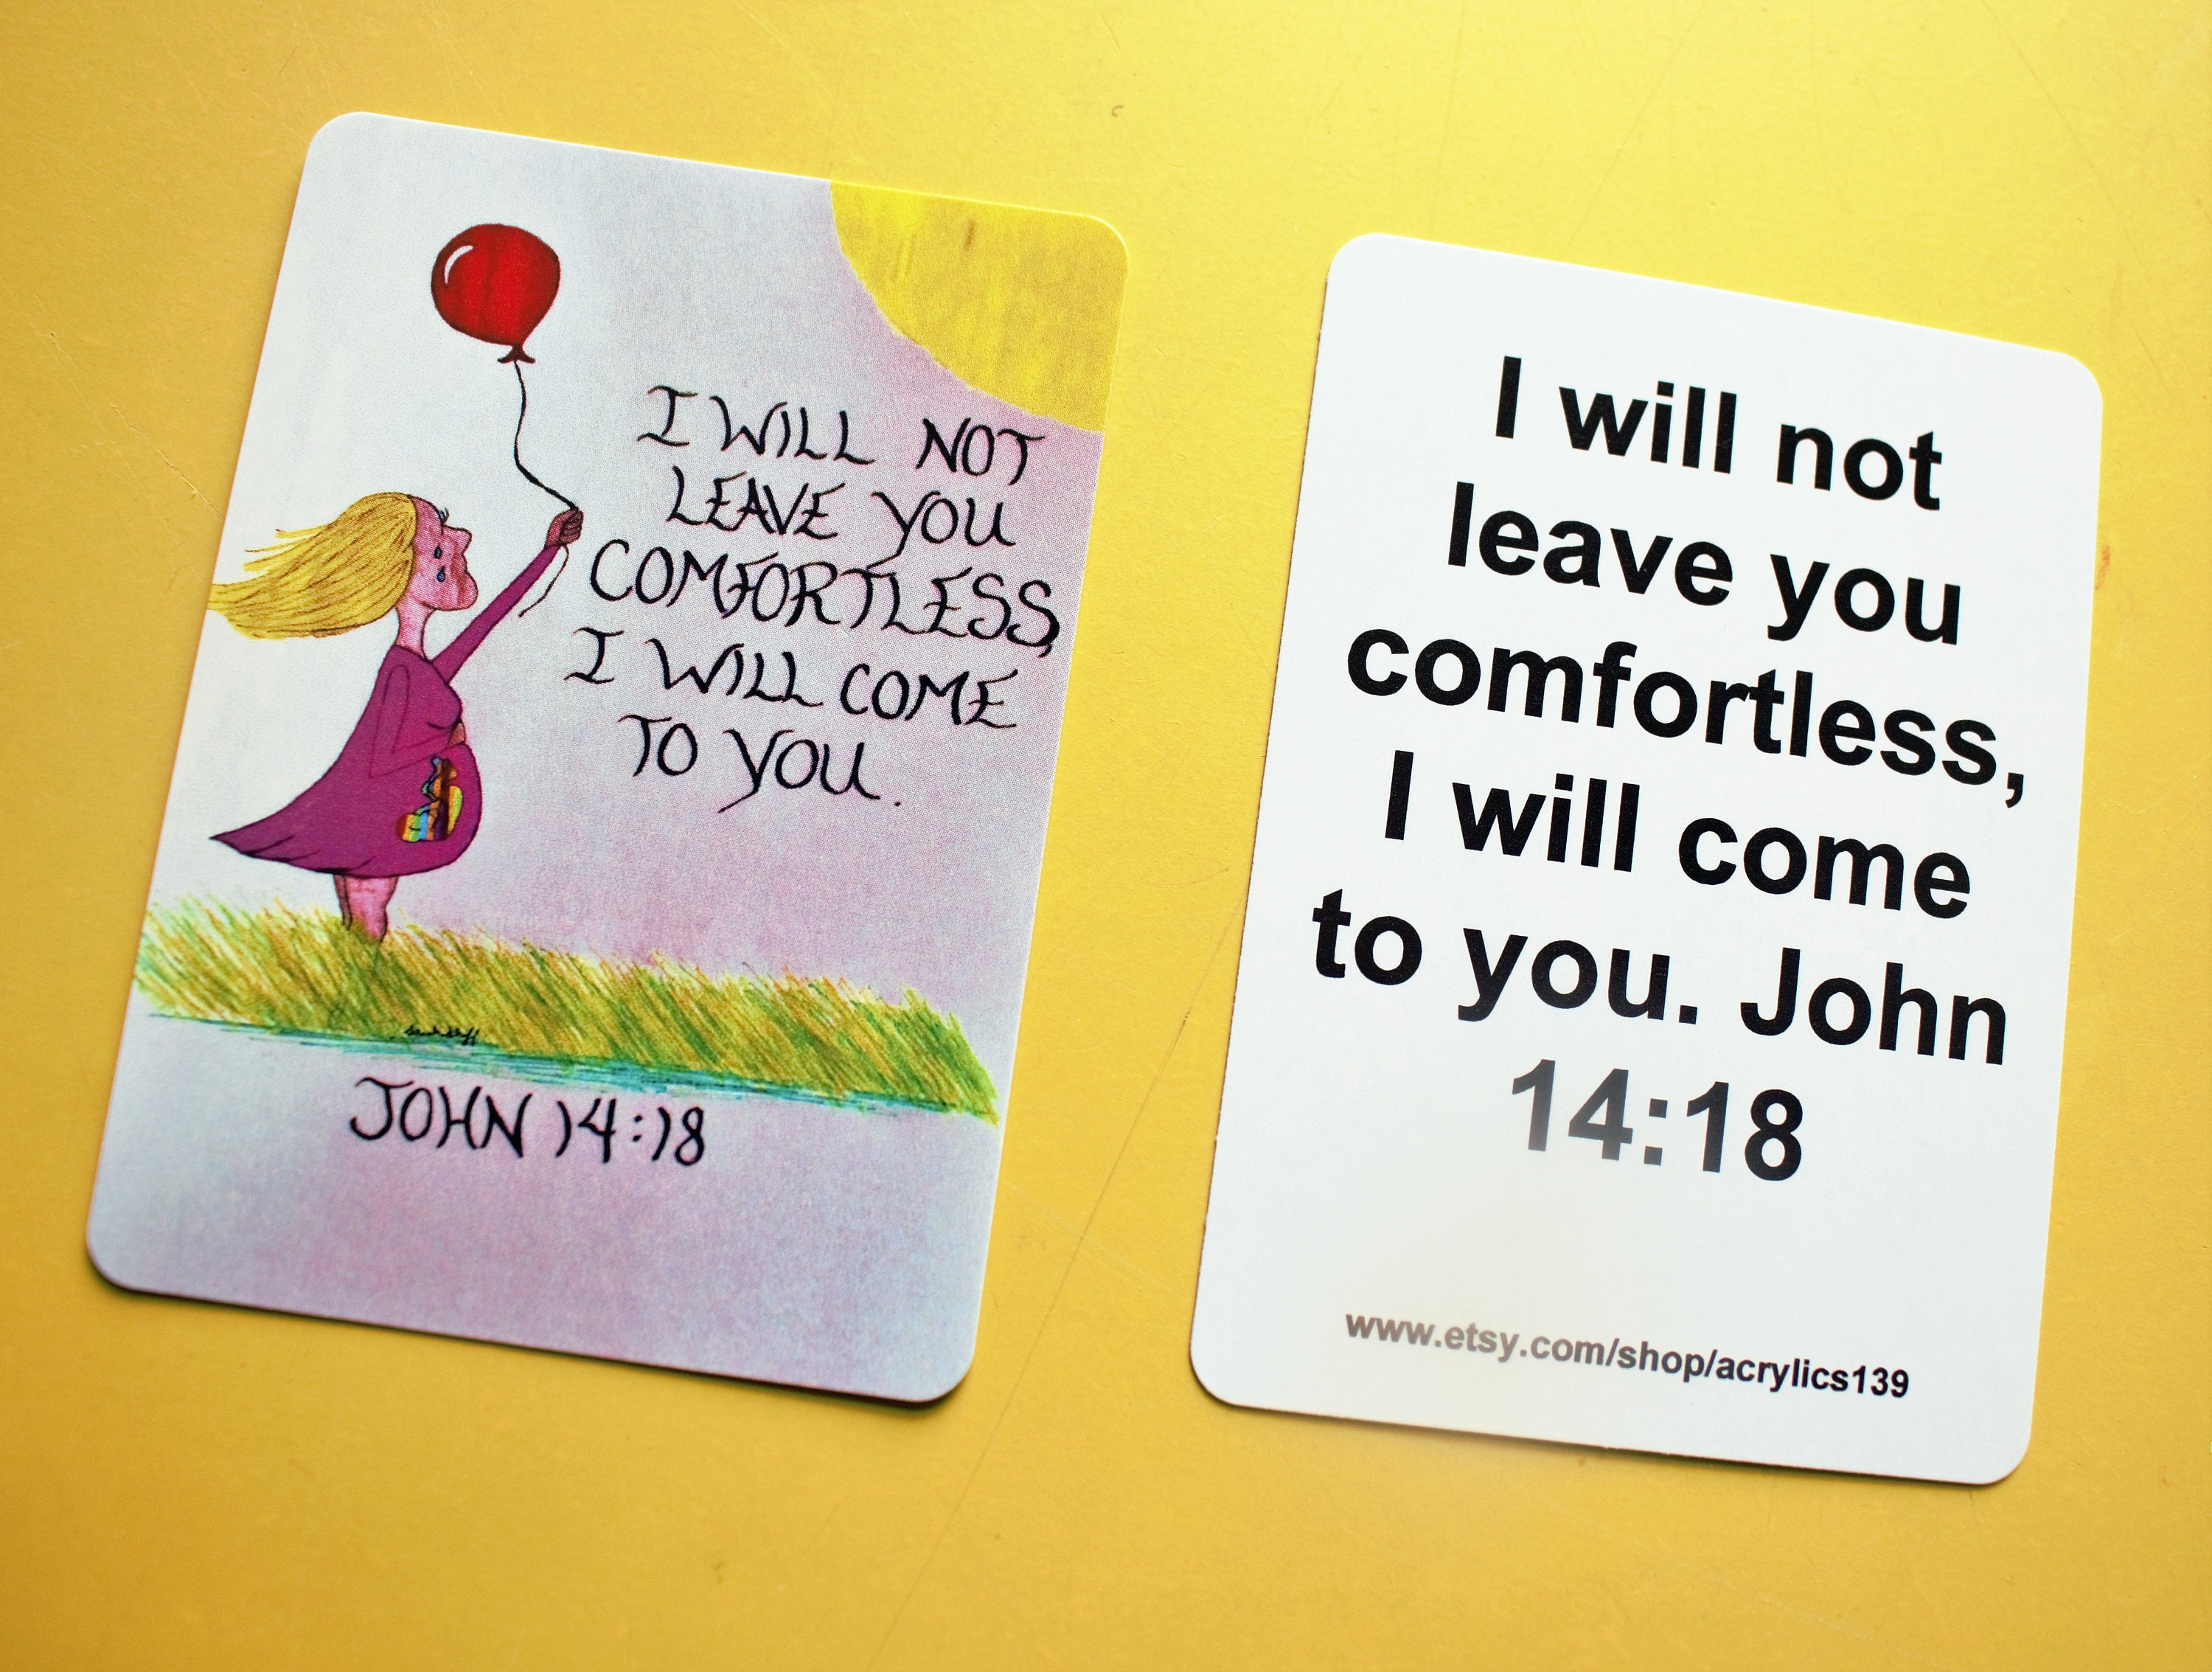 Rainbow Baby Scripture Doodle/John 14:18/ Mom's/Comfort in Baby  Loss/Comfort Card for Miscarriage/Rainbow Baby Bookmark/Rainbow Baby Magnet